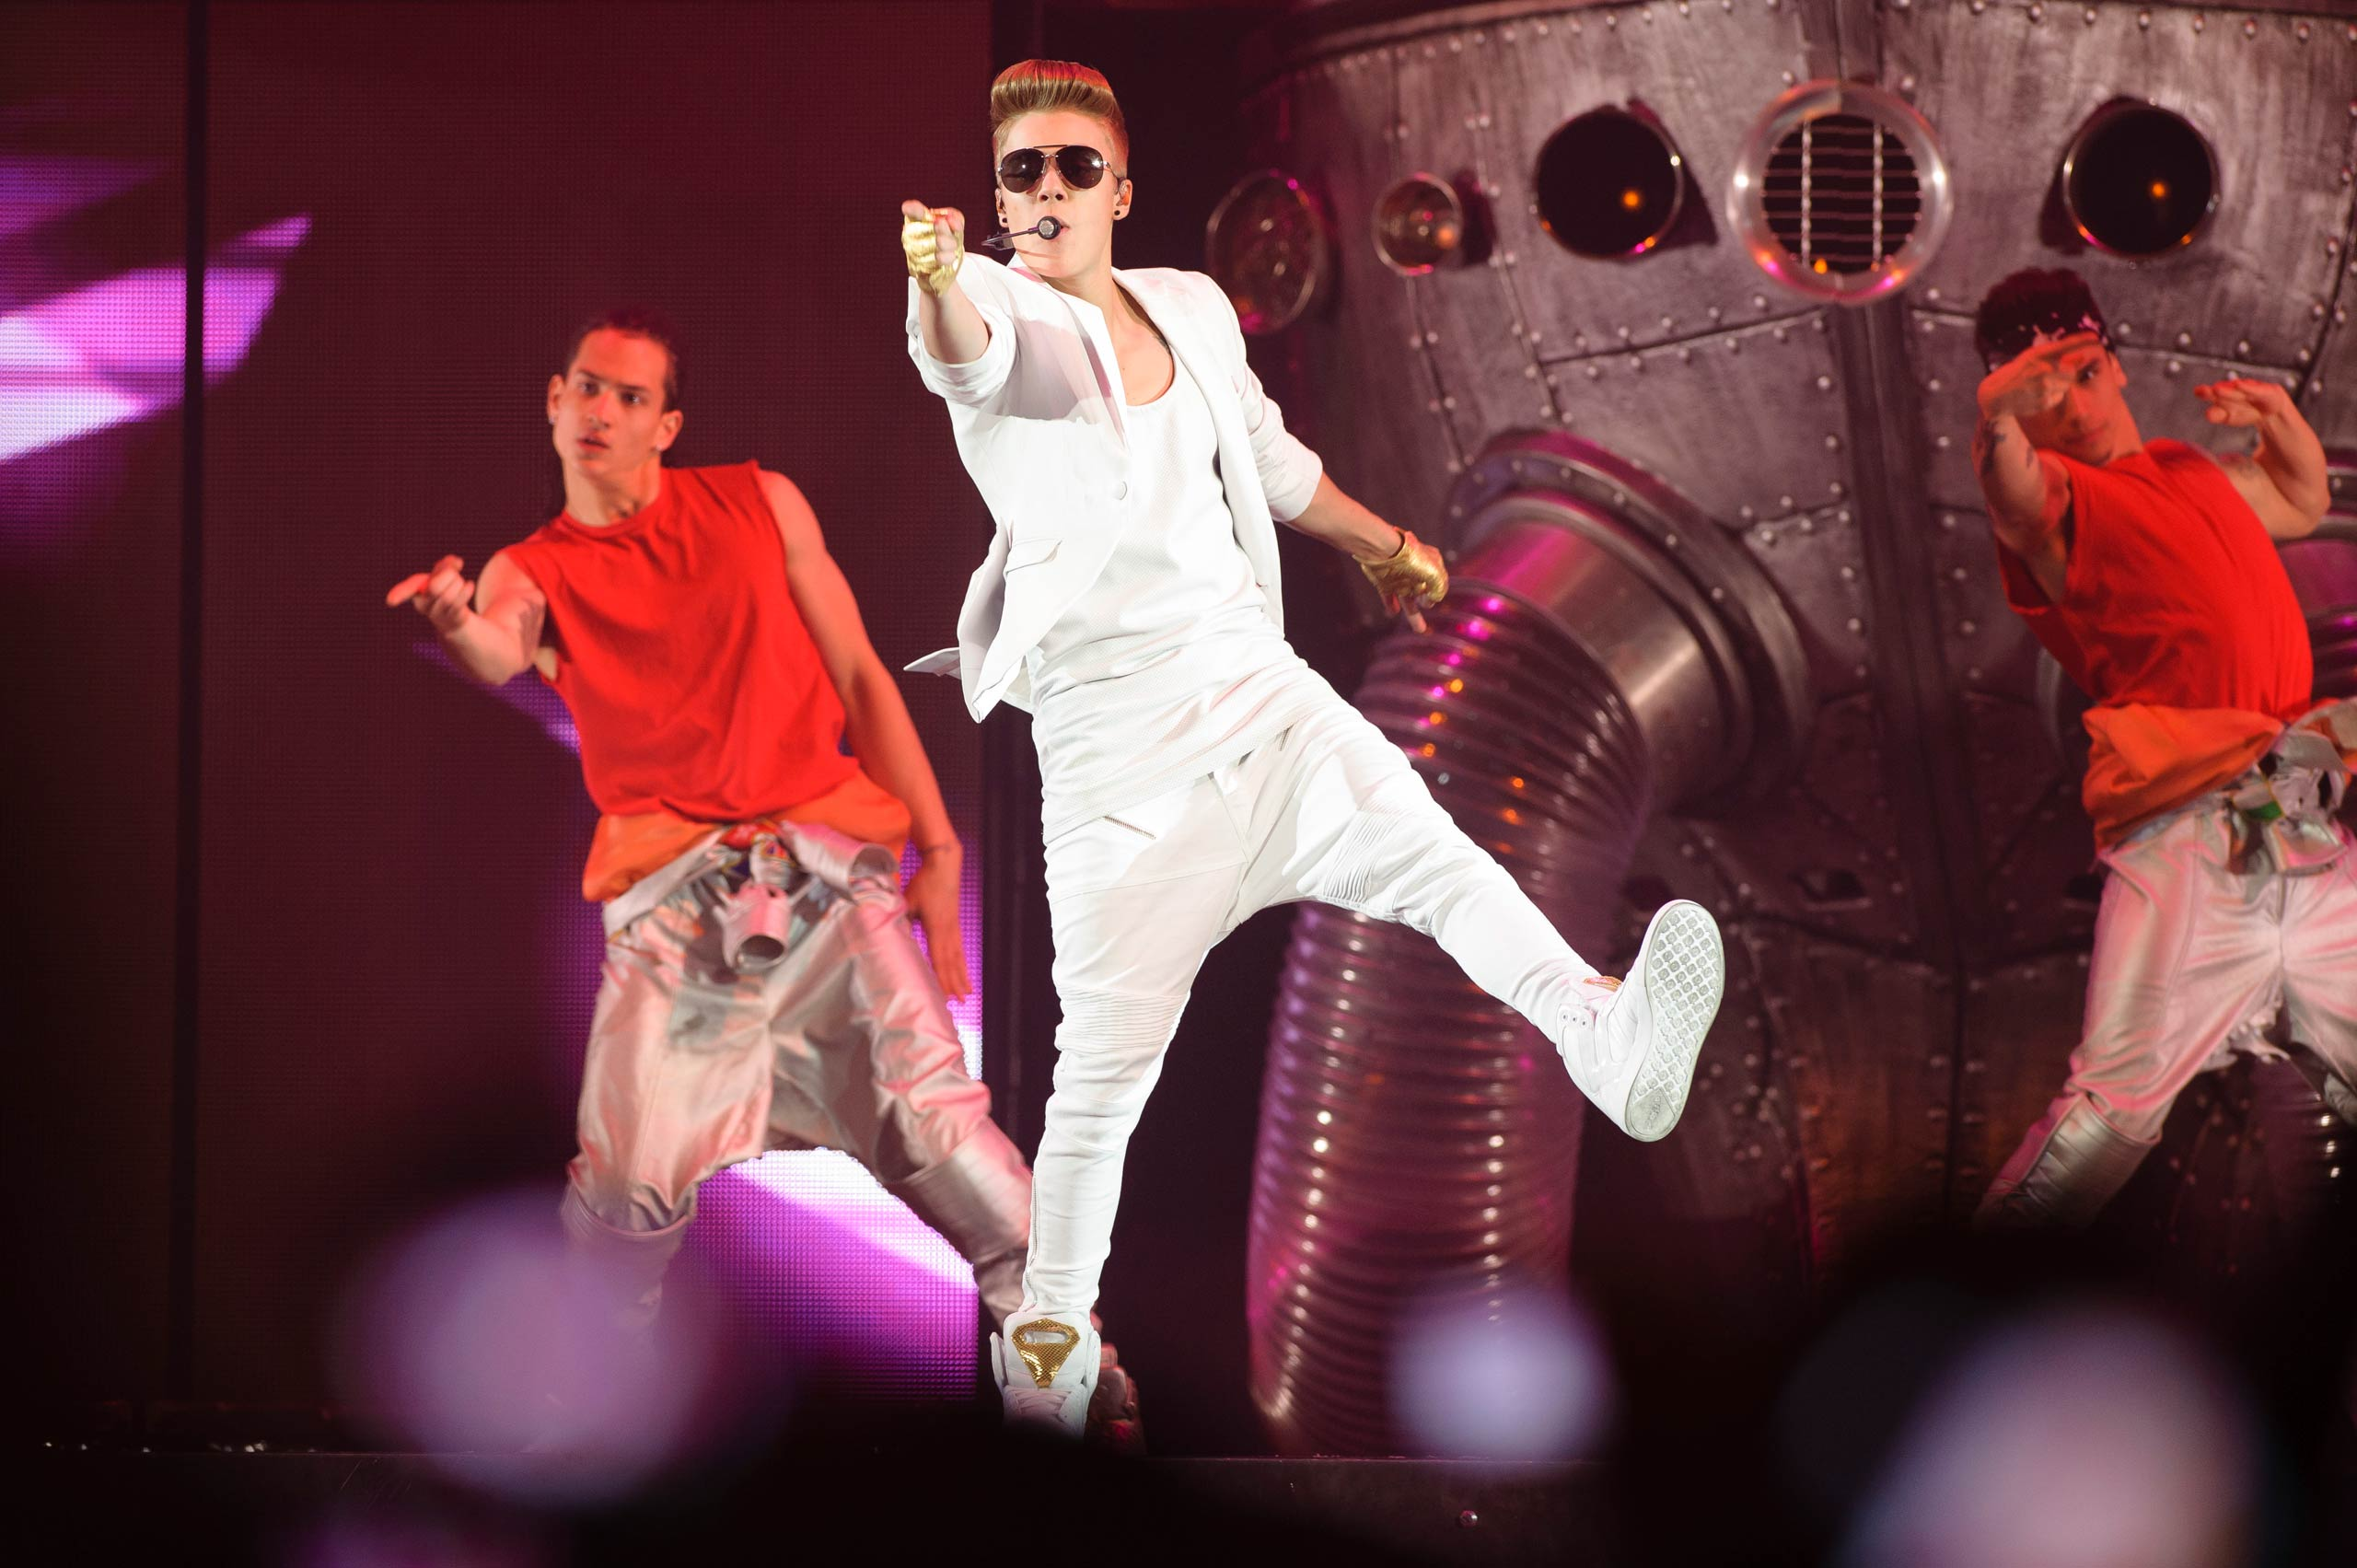 Justin Bieber performs on stage at Olympiahalle in Munich, Germany in 2013.